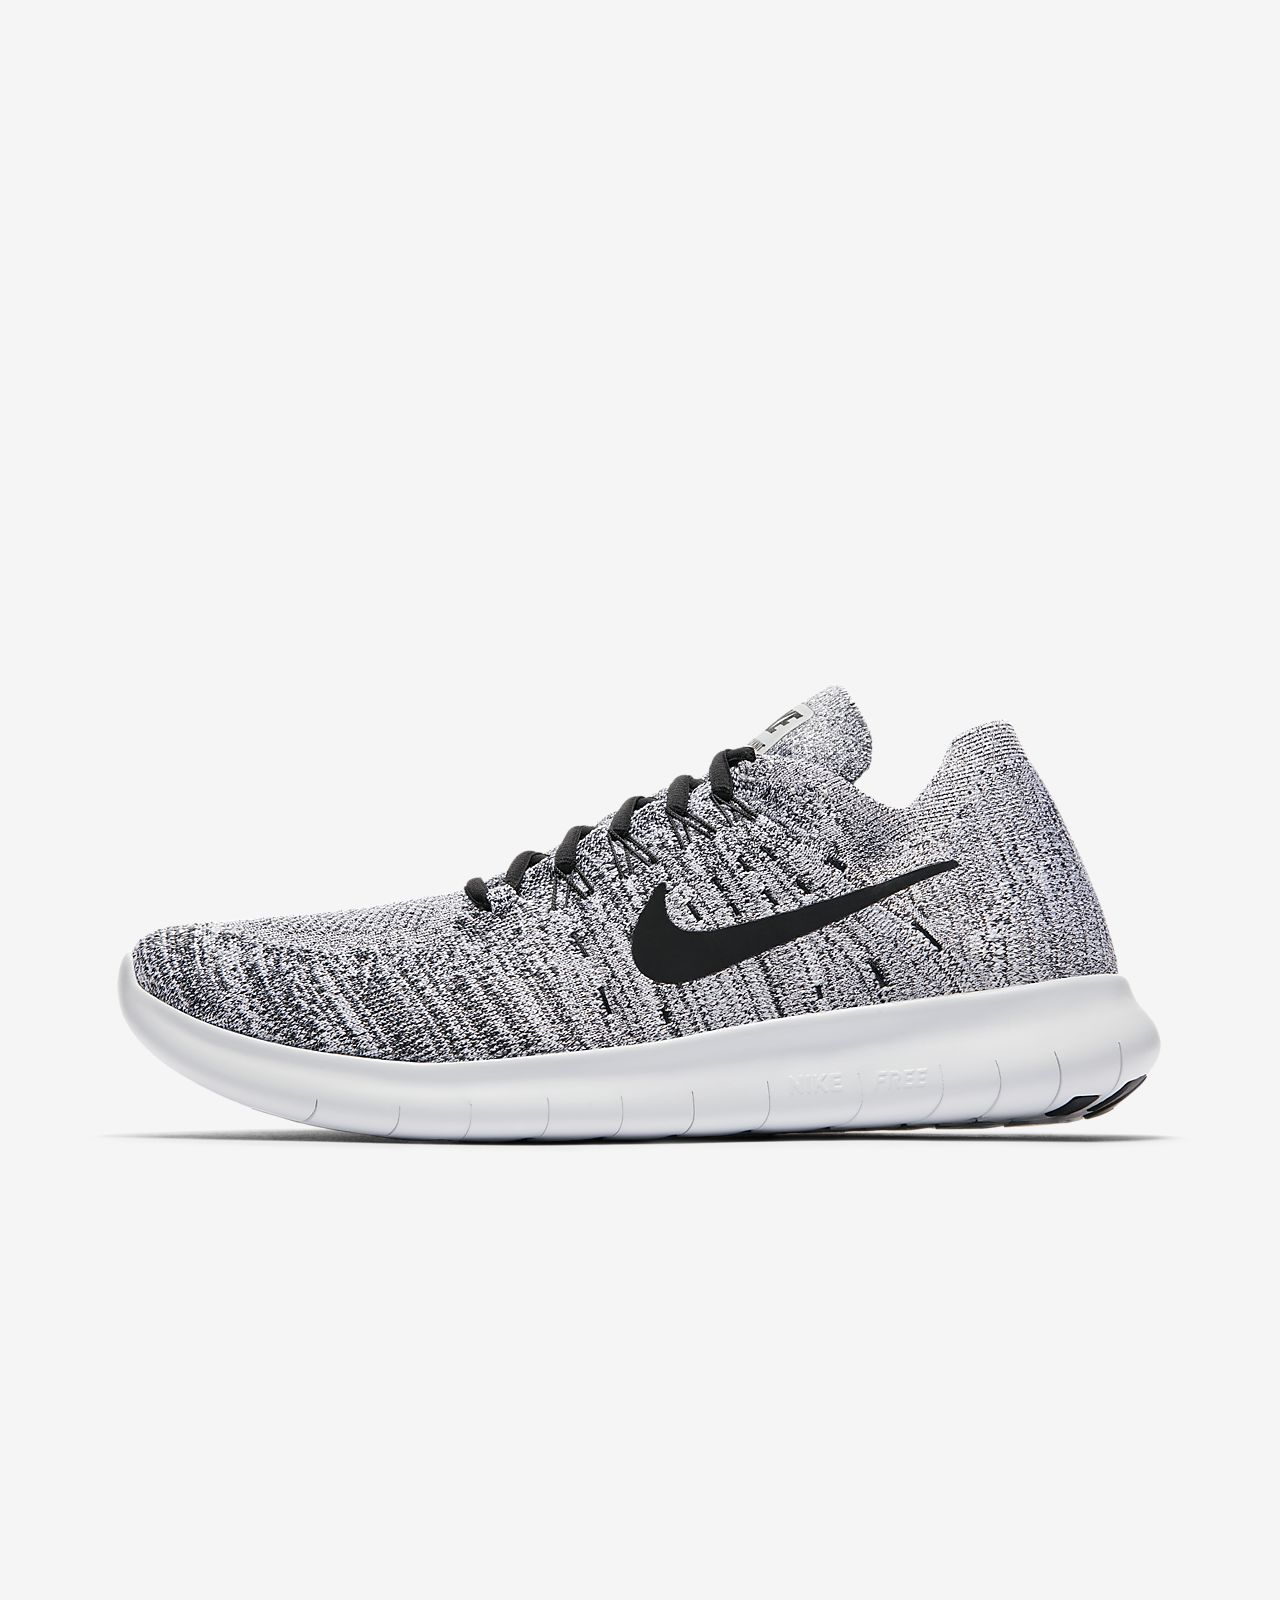 NIKE Women's Free Rn Flyknit 2017 Running Shoes Sneakers White Platinum Knit